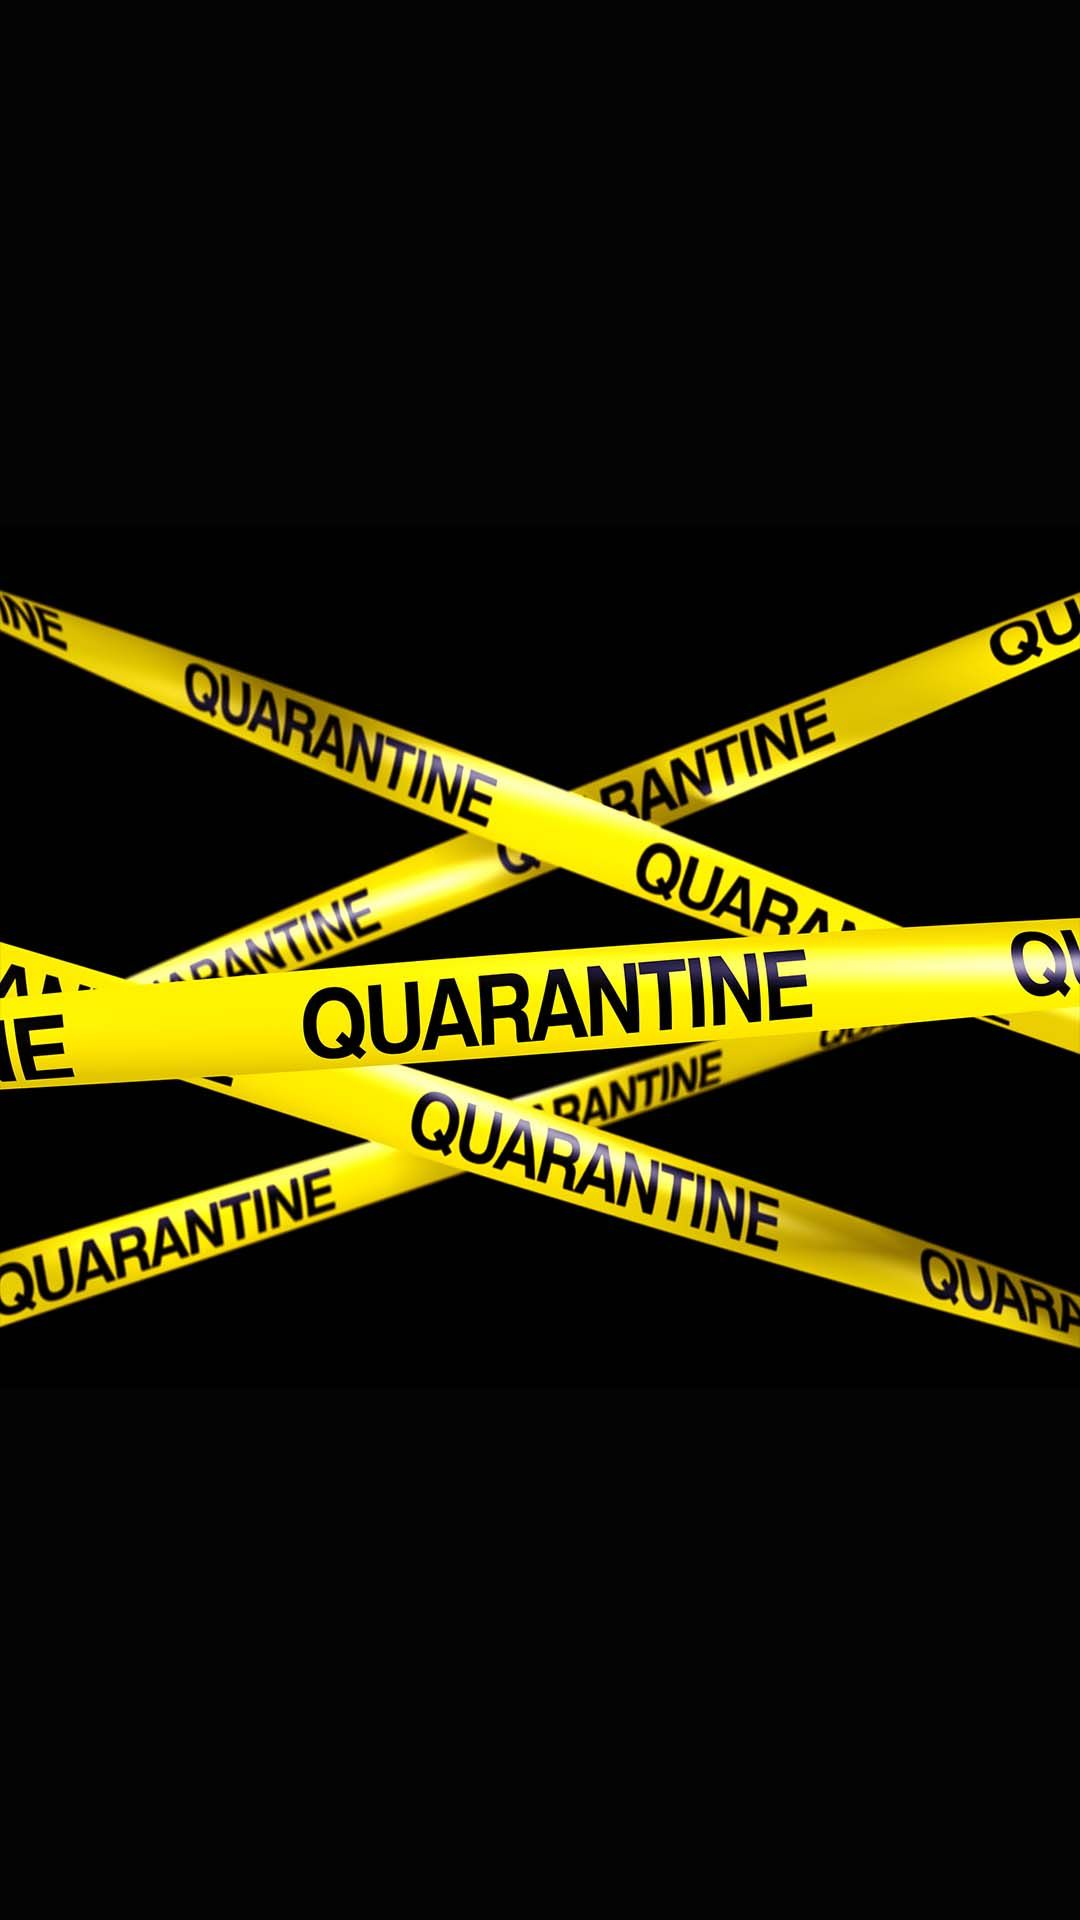 Quarantine iPhone Wallpaper - iPhone Wallpapers